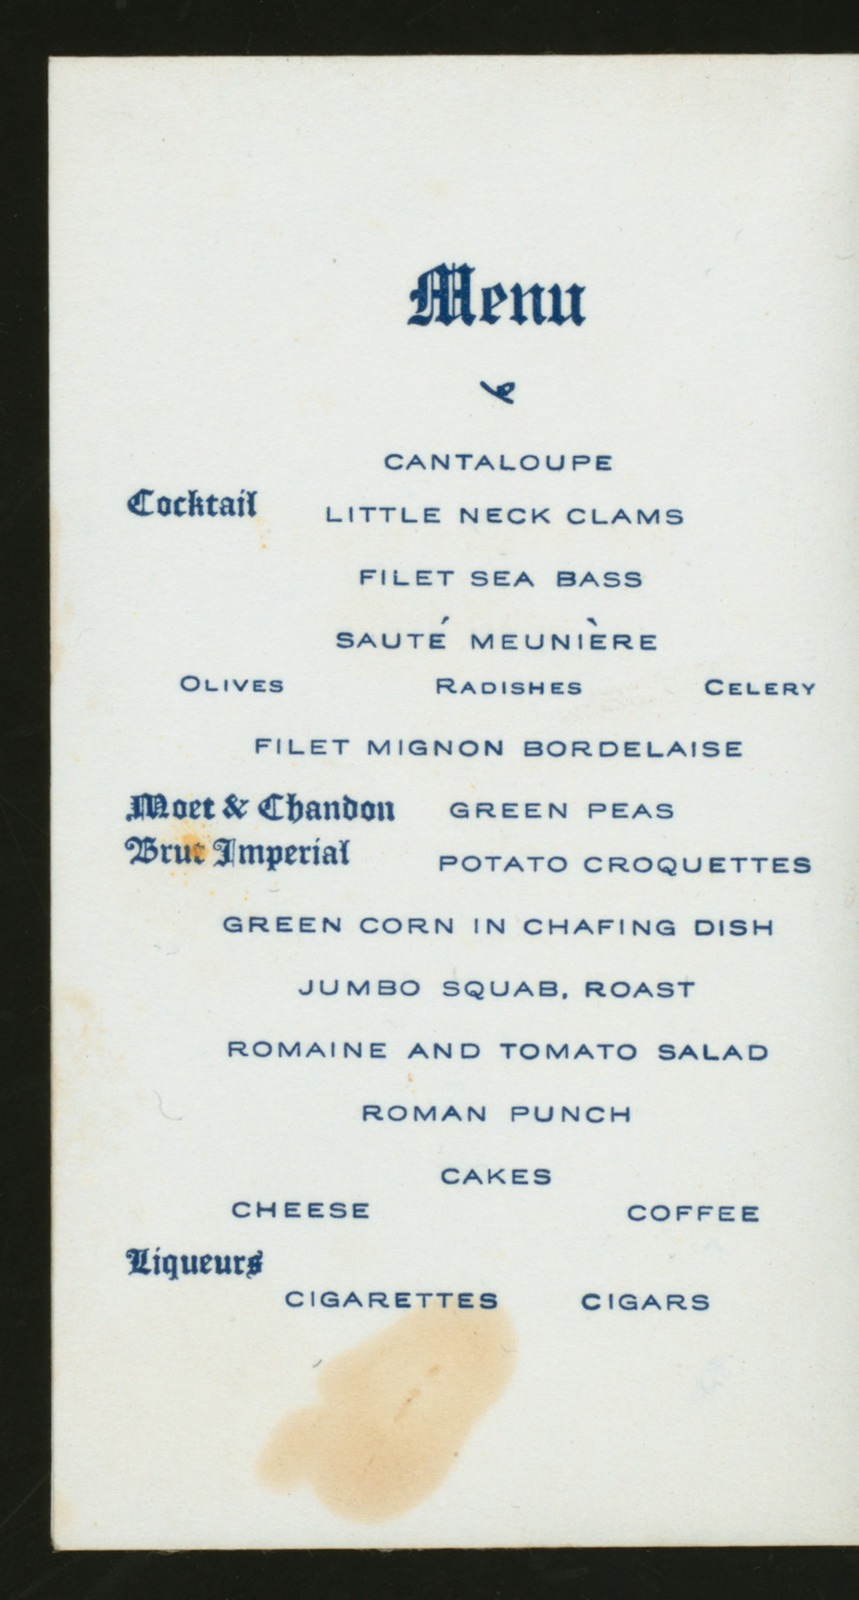 """DINNER TENDERED BY MEMBERS TO THE """"SENIOR EIGHT"""" IN HONOR OF THEIR VICTORY IN THE SENIOR EIGHT-OARED SHELL RACE AT THE PEOPLE'S REGATTA HELD ON THE SCHUYLKILL RIVER, PHILADELPHIA ON JULY 4, 1906 [held by] NASSAU BOAT CLUB [at] """"NEW YORK ATHLETIC CLUB, NEW YORK, NY"""" (OTHER (CLUB);)"""